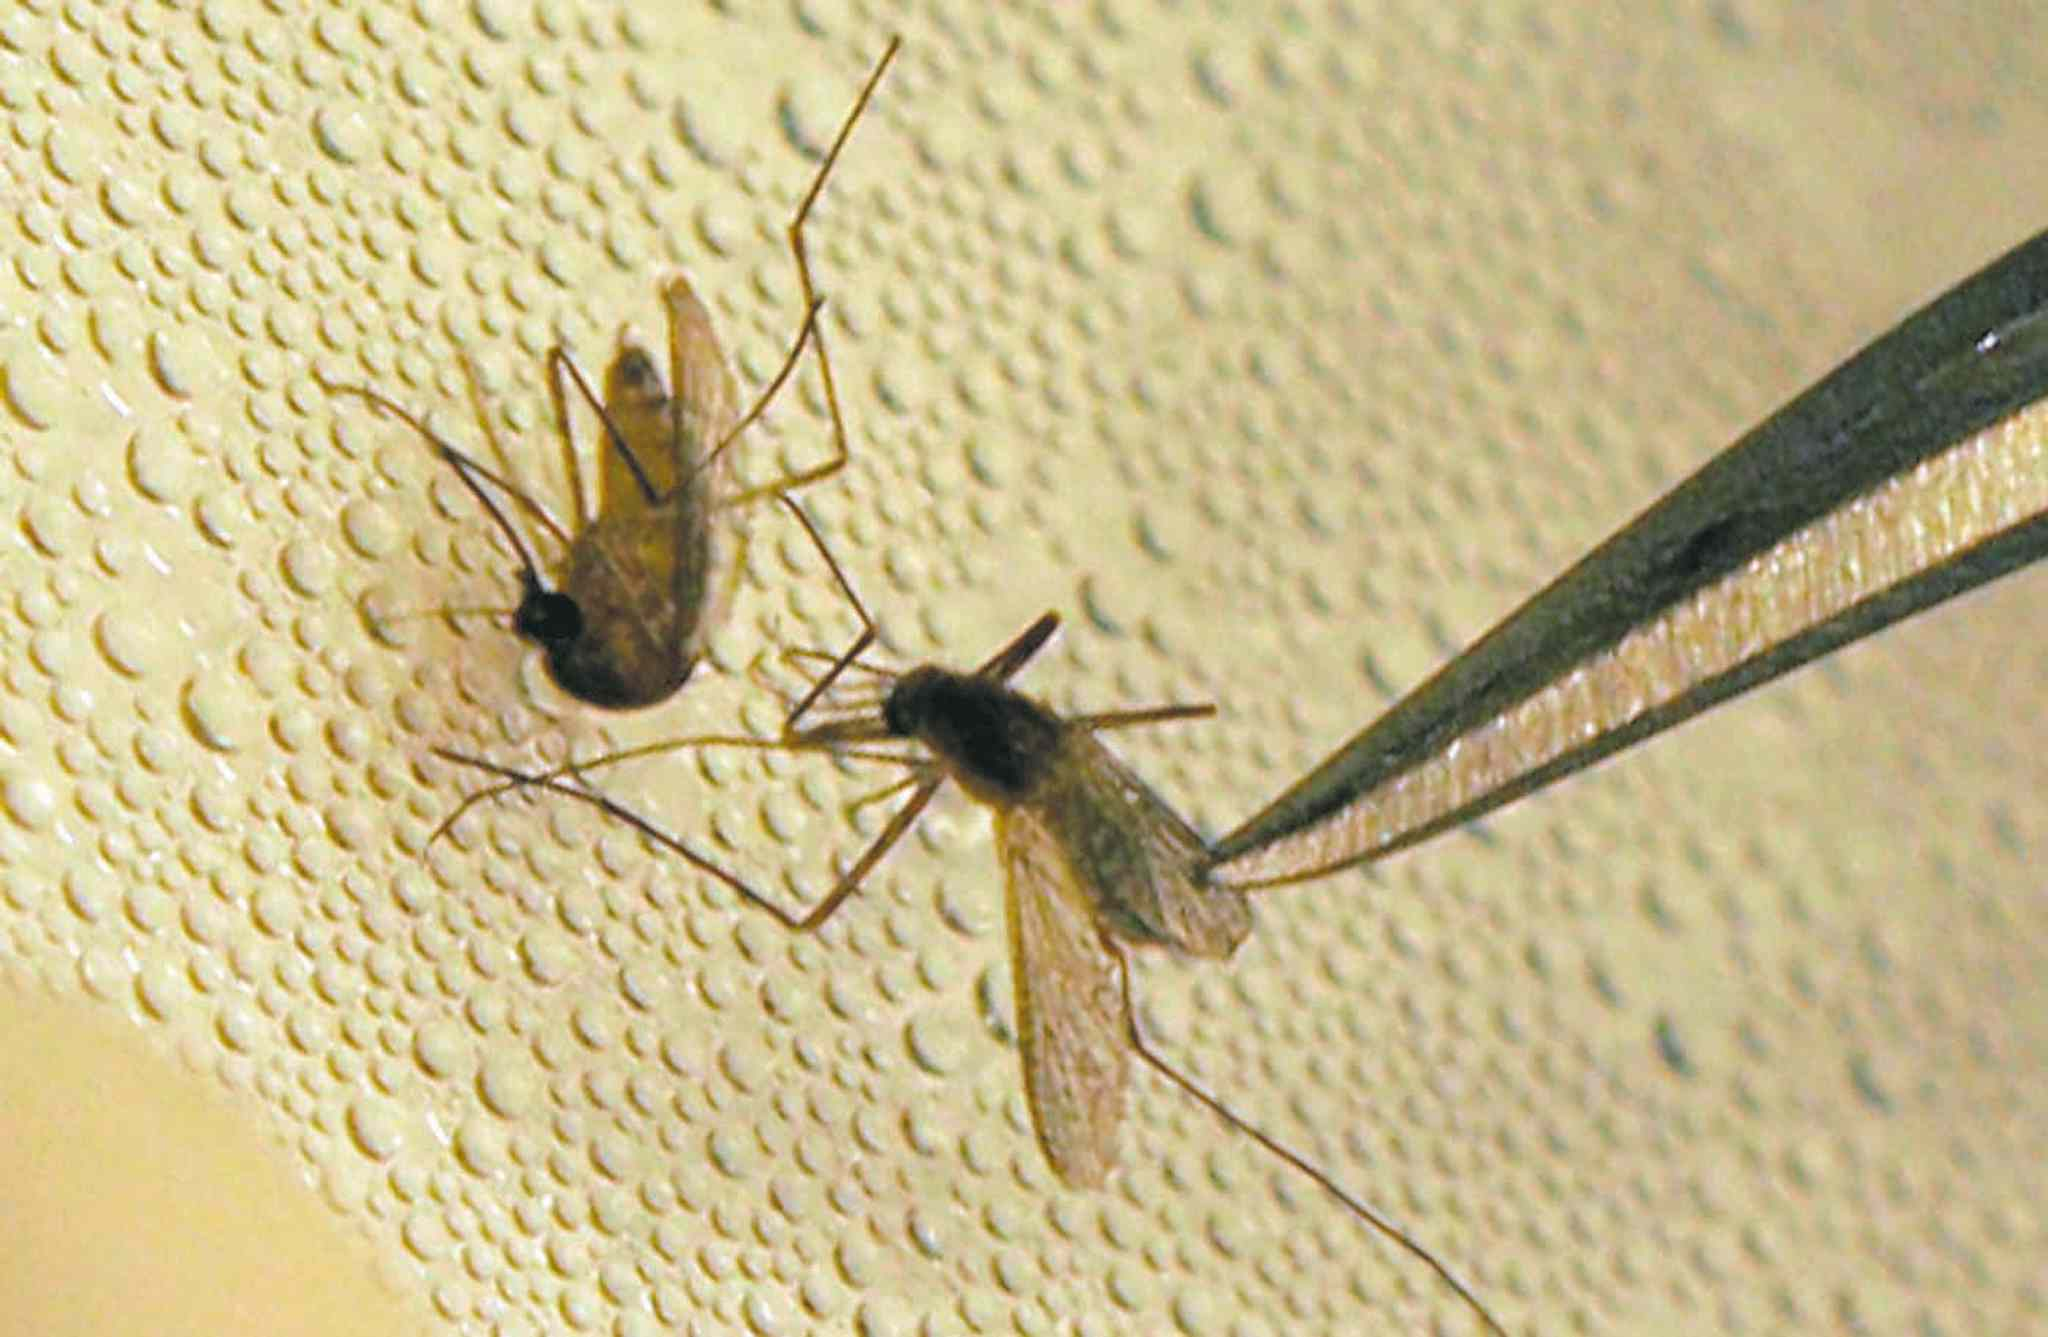 Mosquitoes are tested for West Nile Virus.